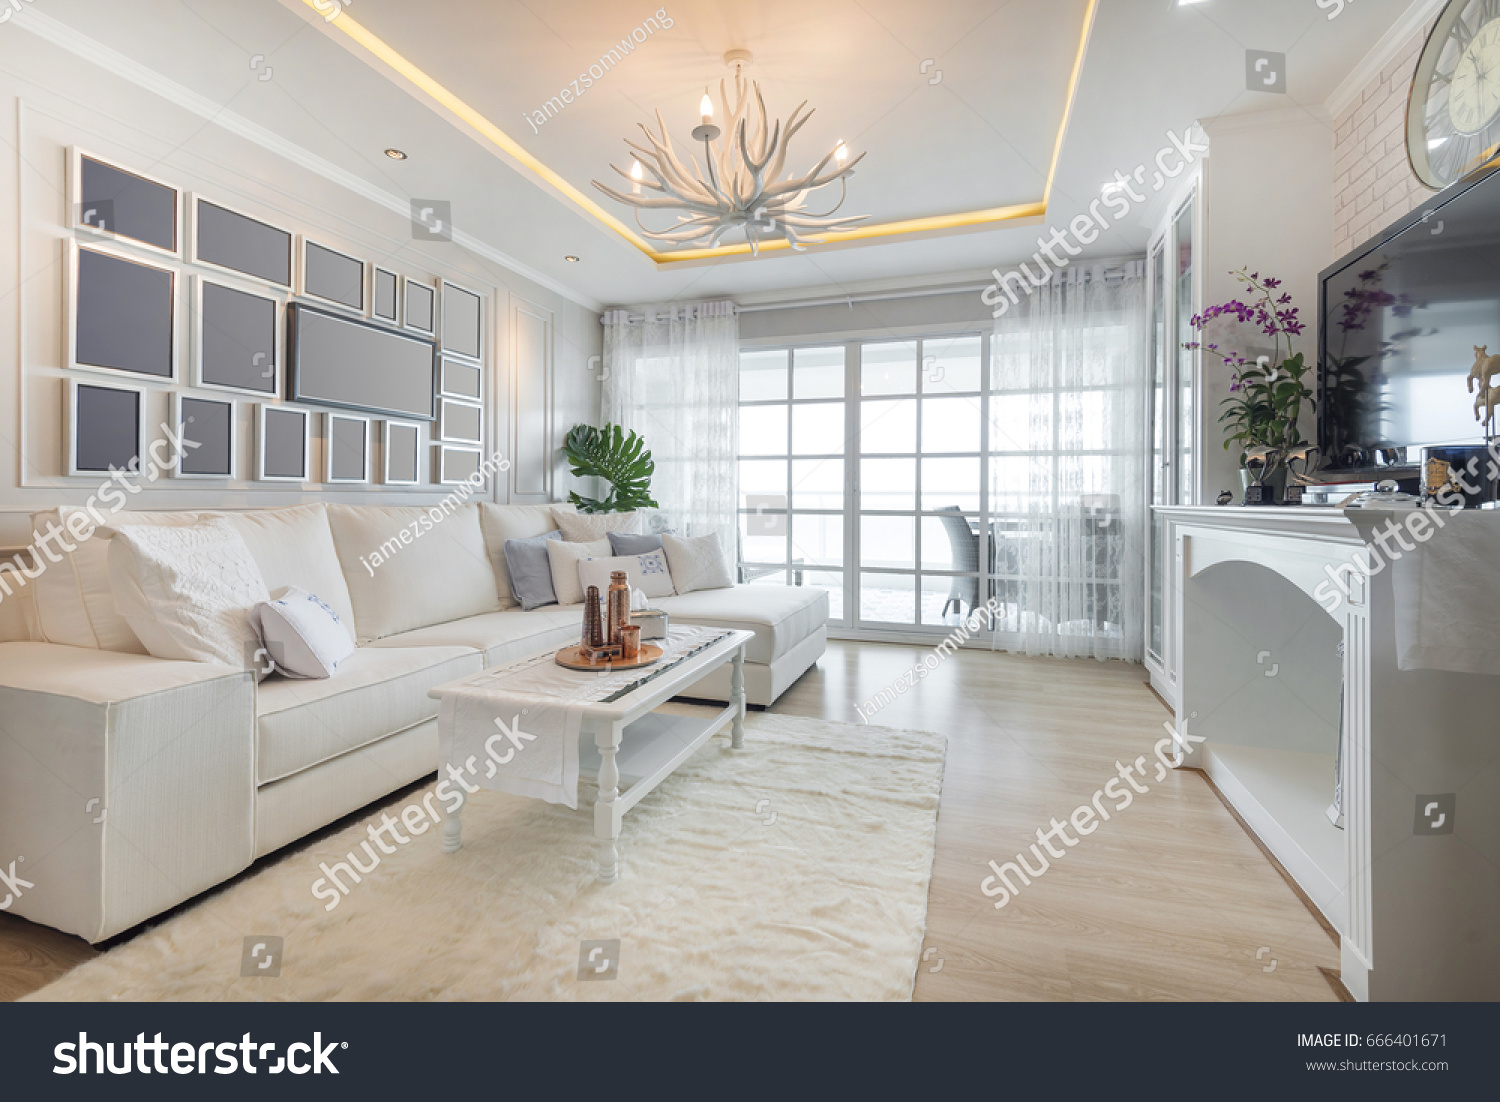 Renovation White Living Room Seaside Ambience Stock Photo (Royalty ...